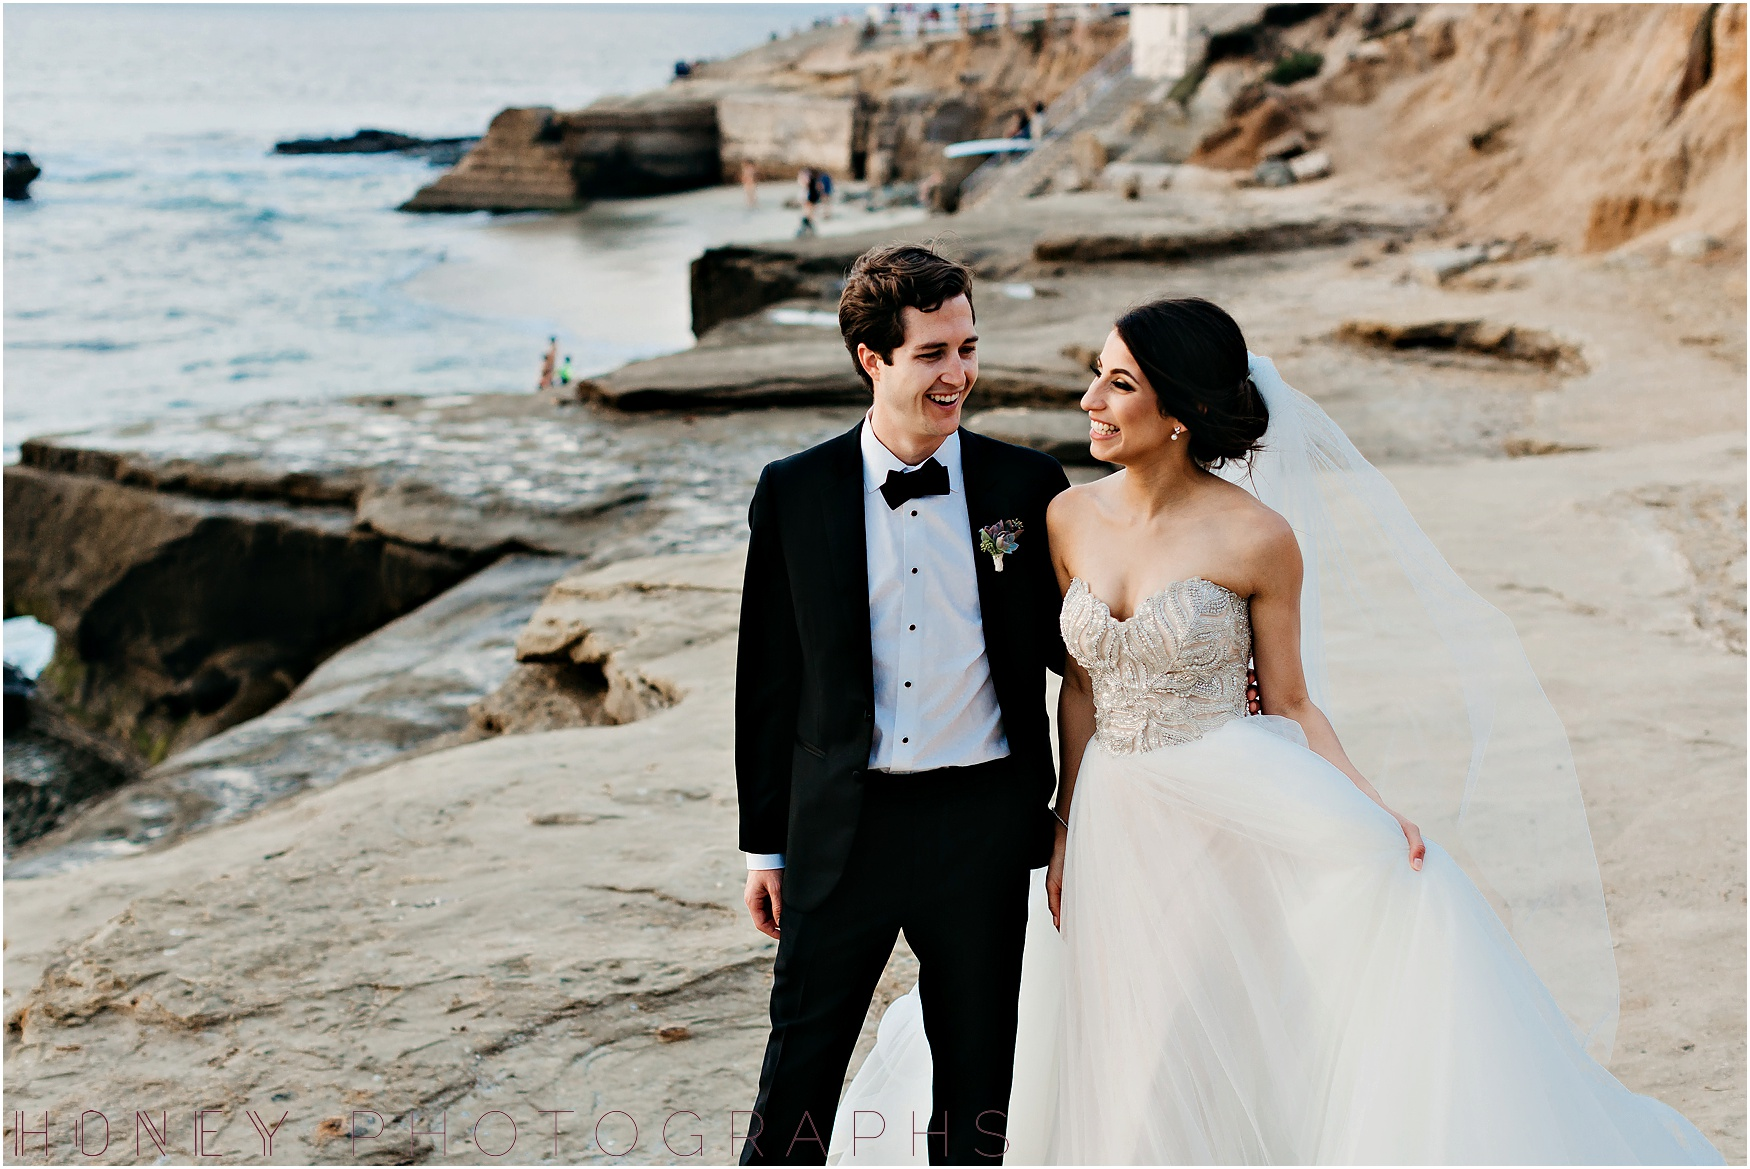 la_jolla_timeless_classic_elegant_cliffs_beach_black_tie_wedding047.jpg